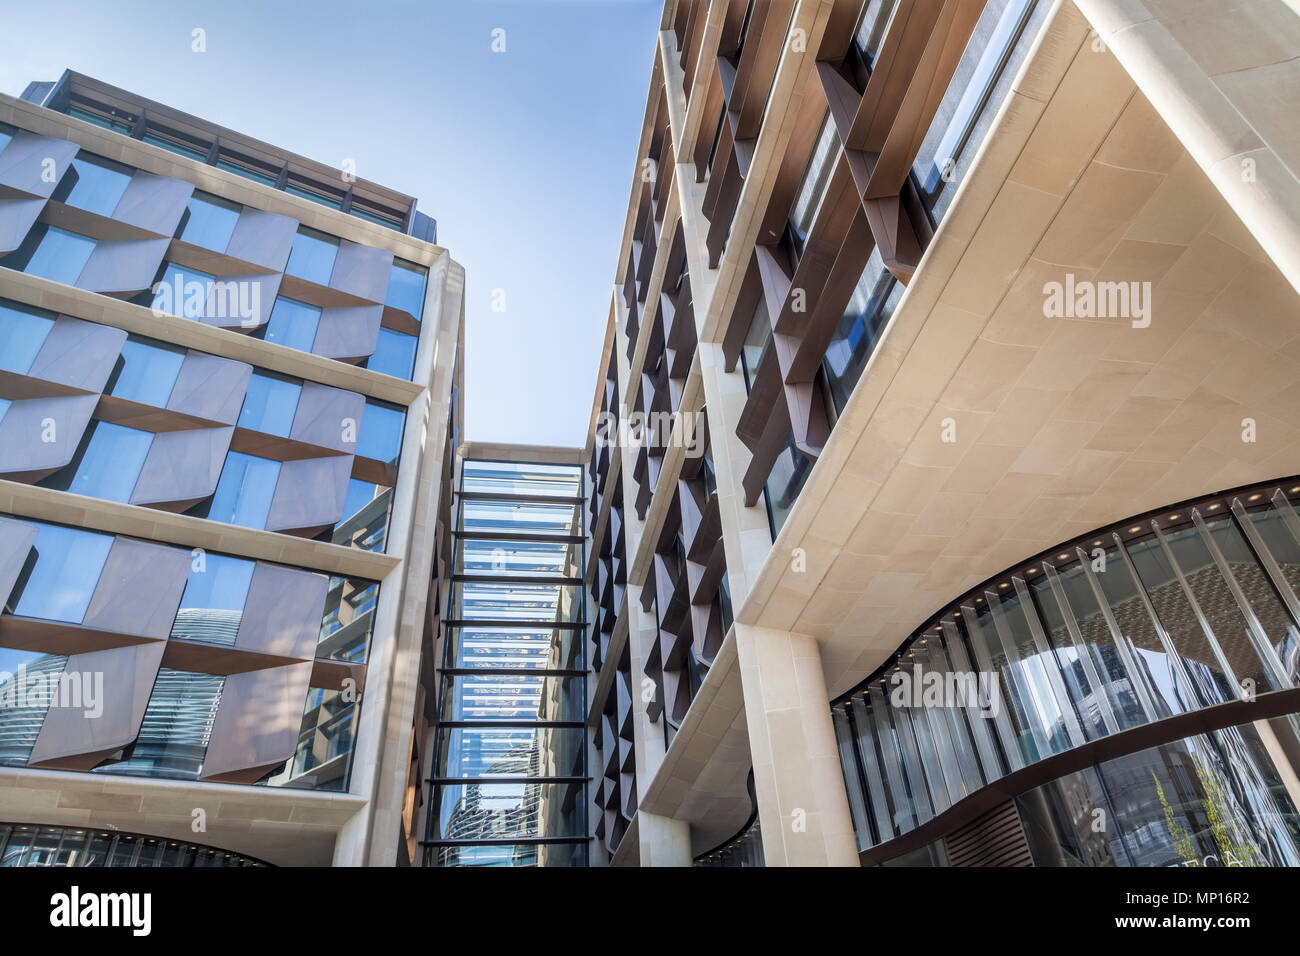 Bloomberg new London headquarters. - Stock Image